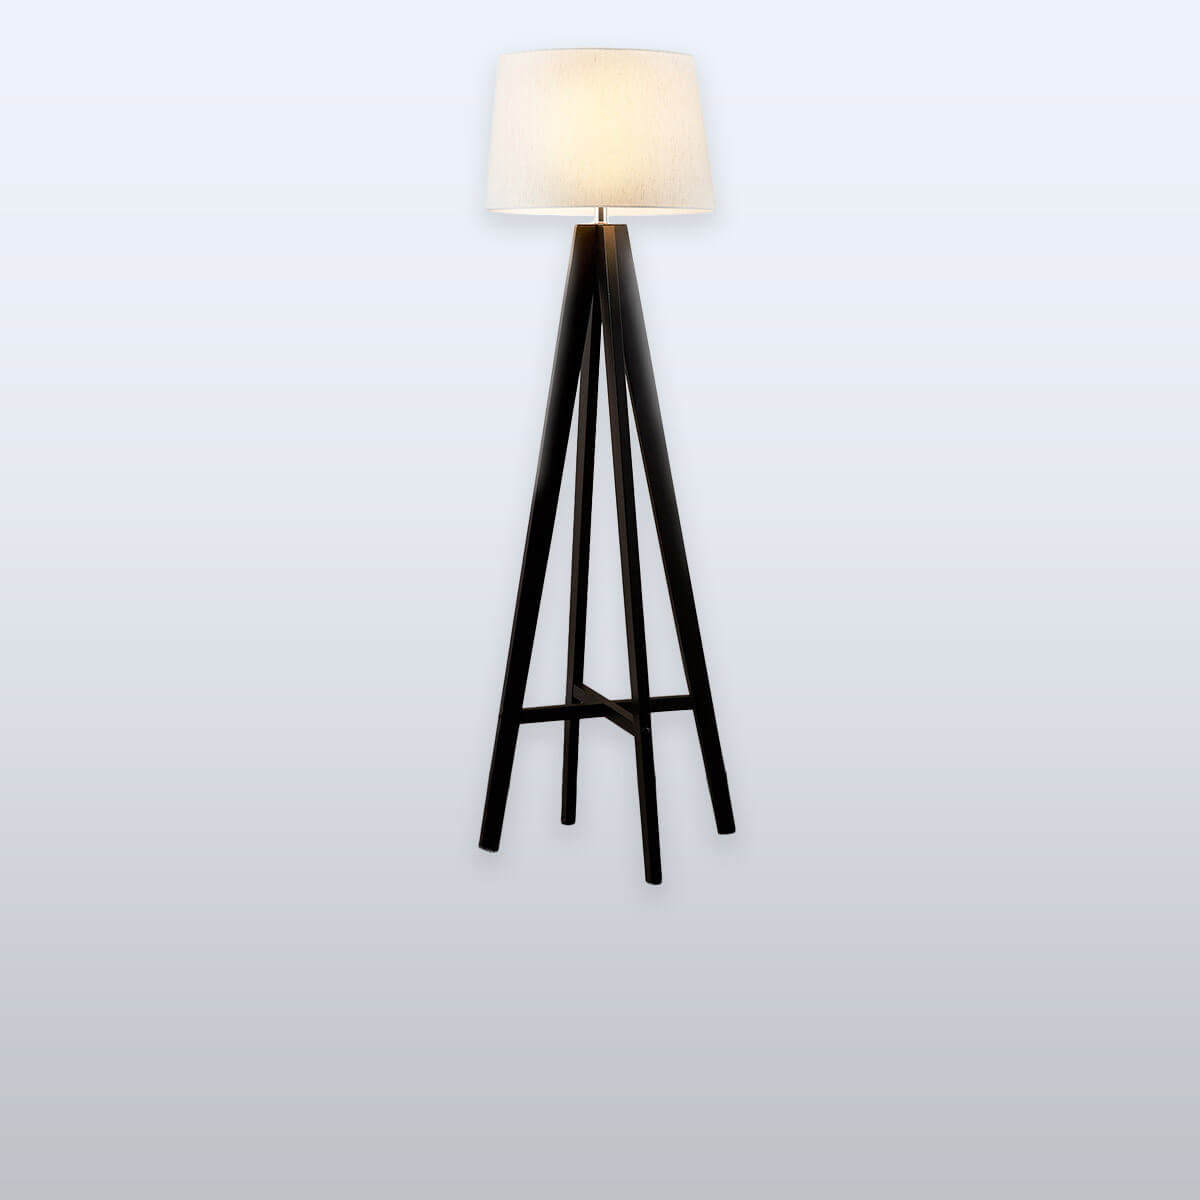 floor lamps category featured grey 1200x1200 2